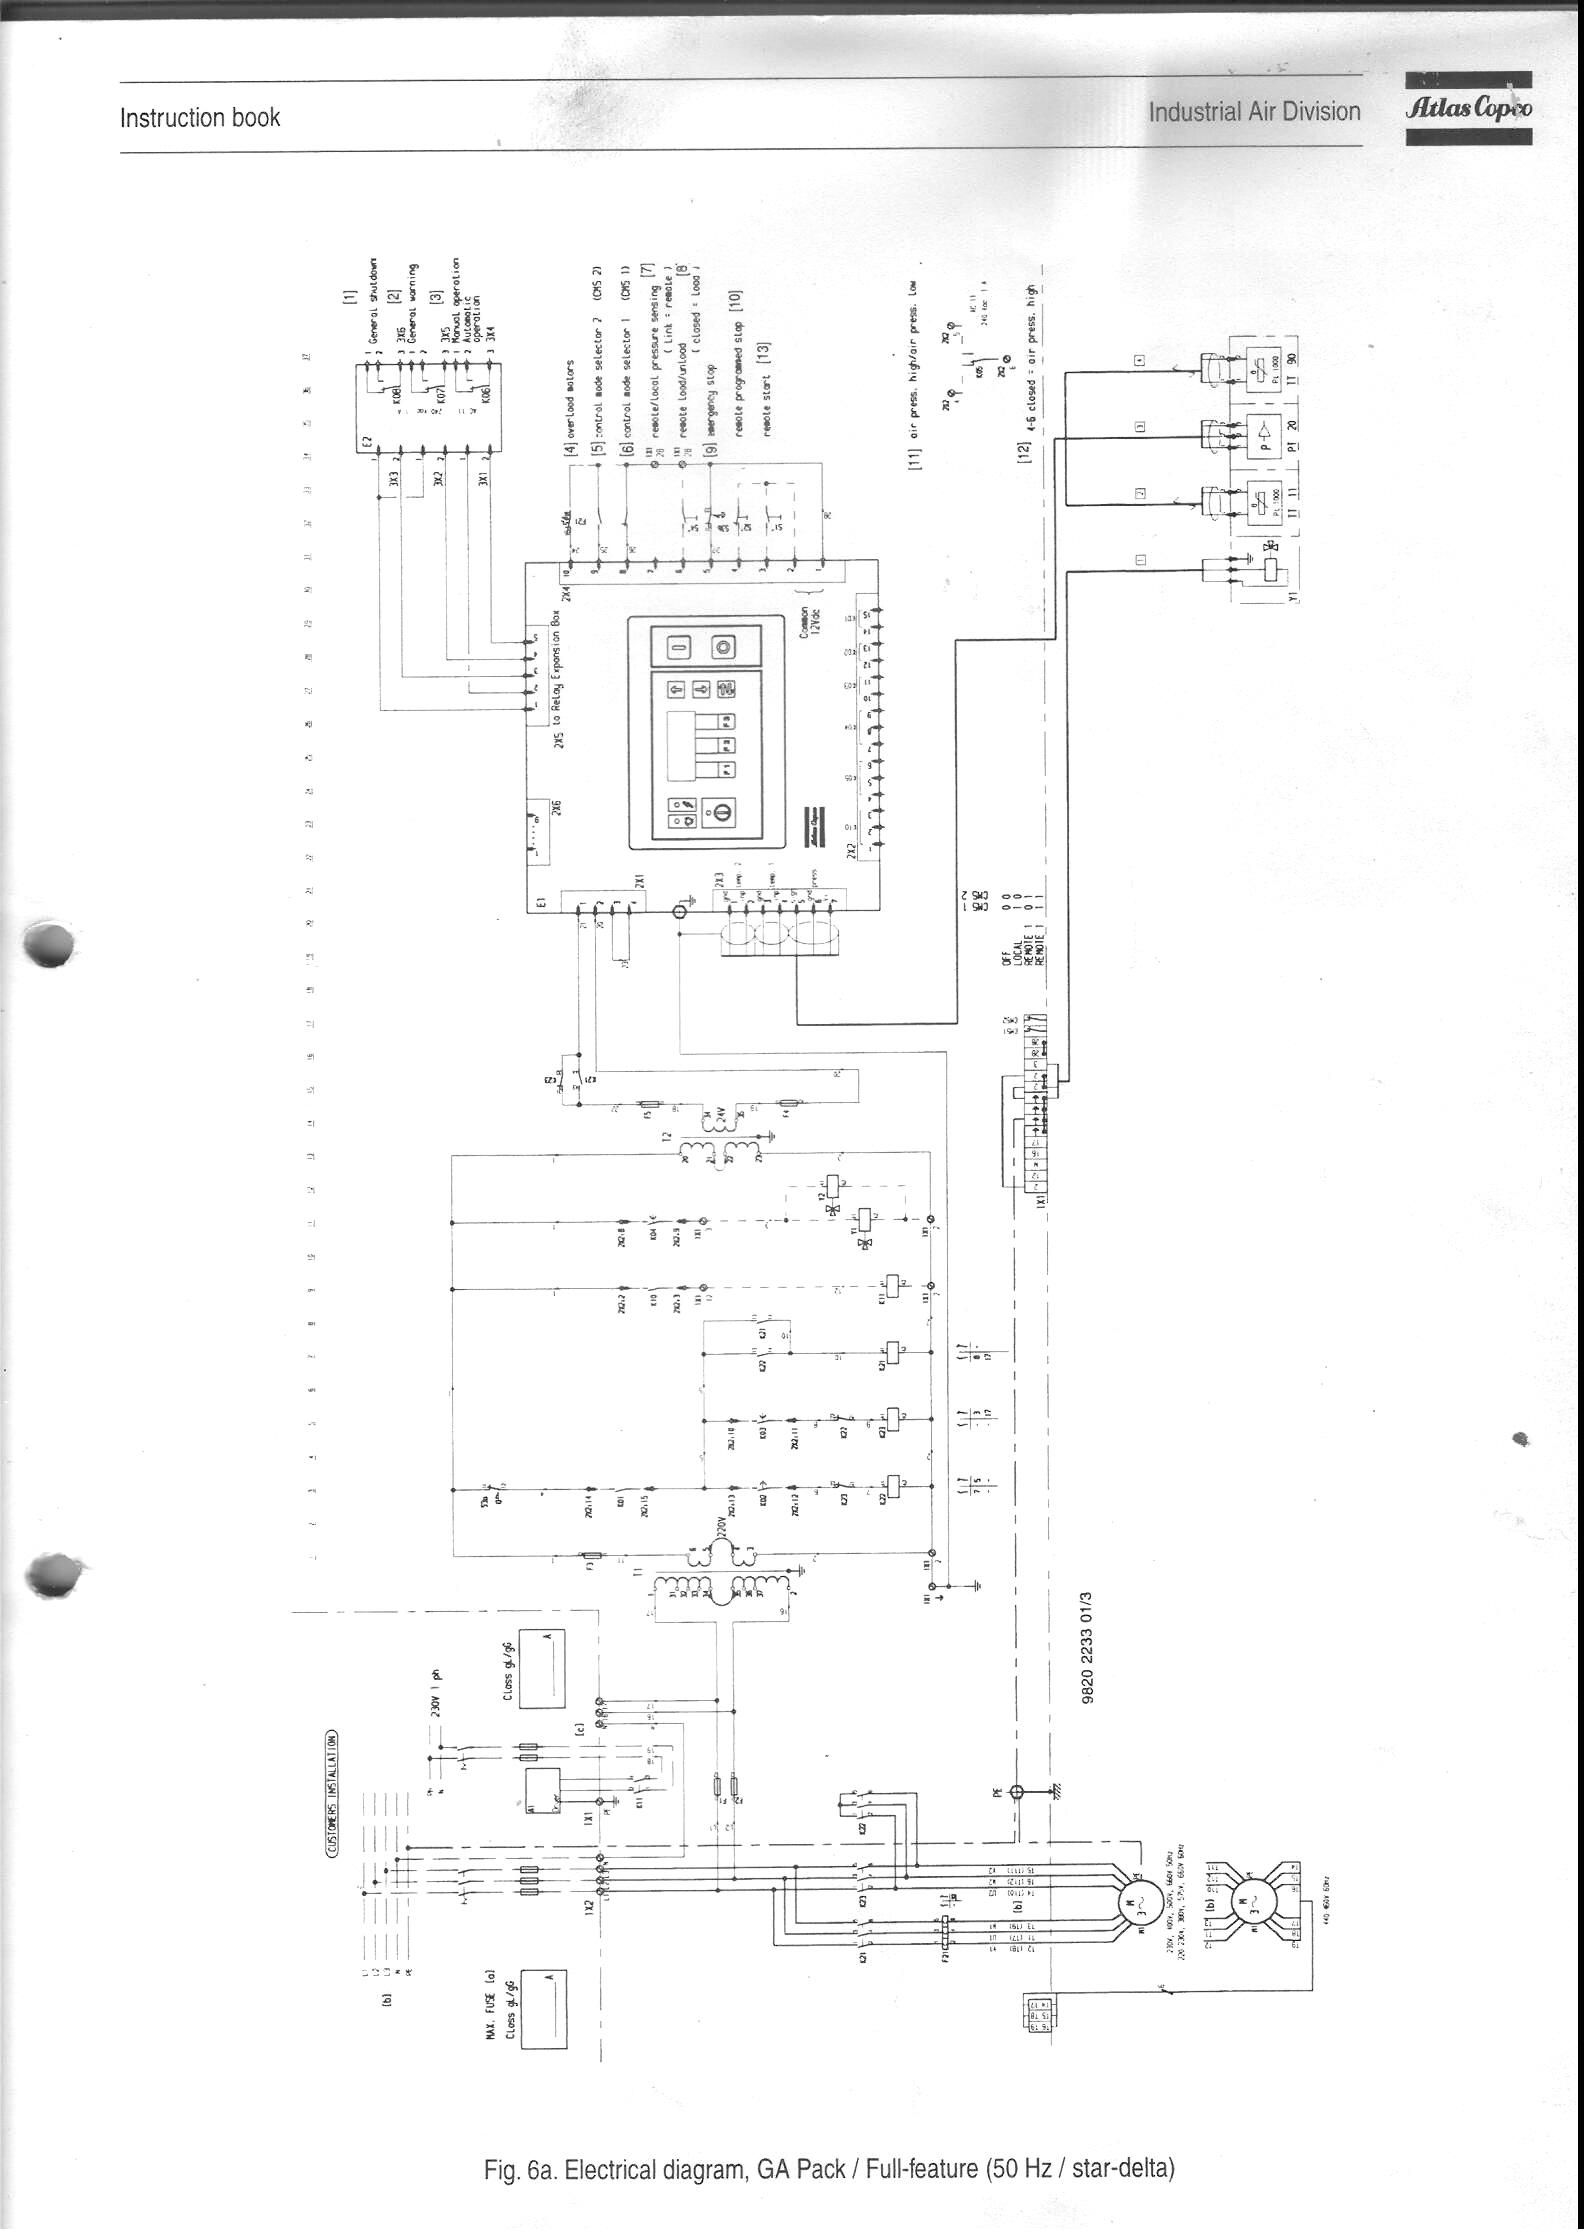 Atlas Copco U6 Operation Manual